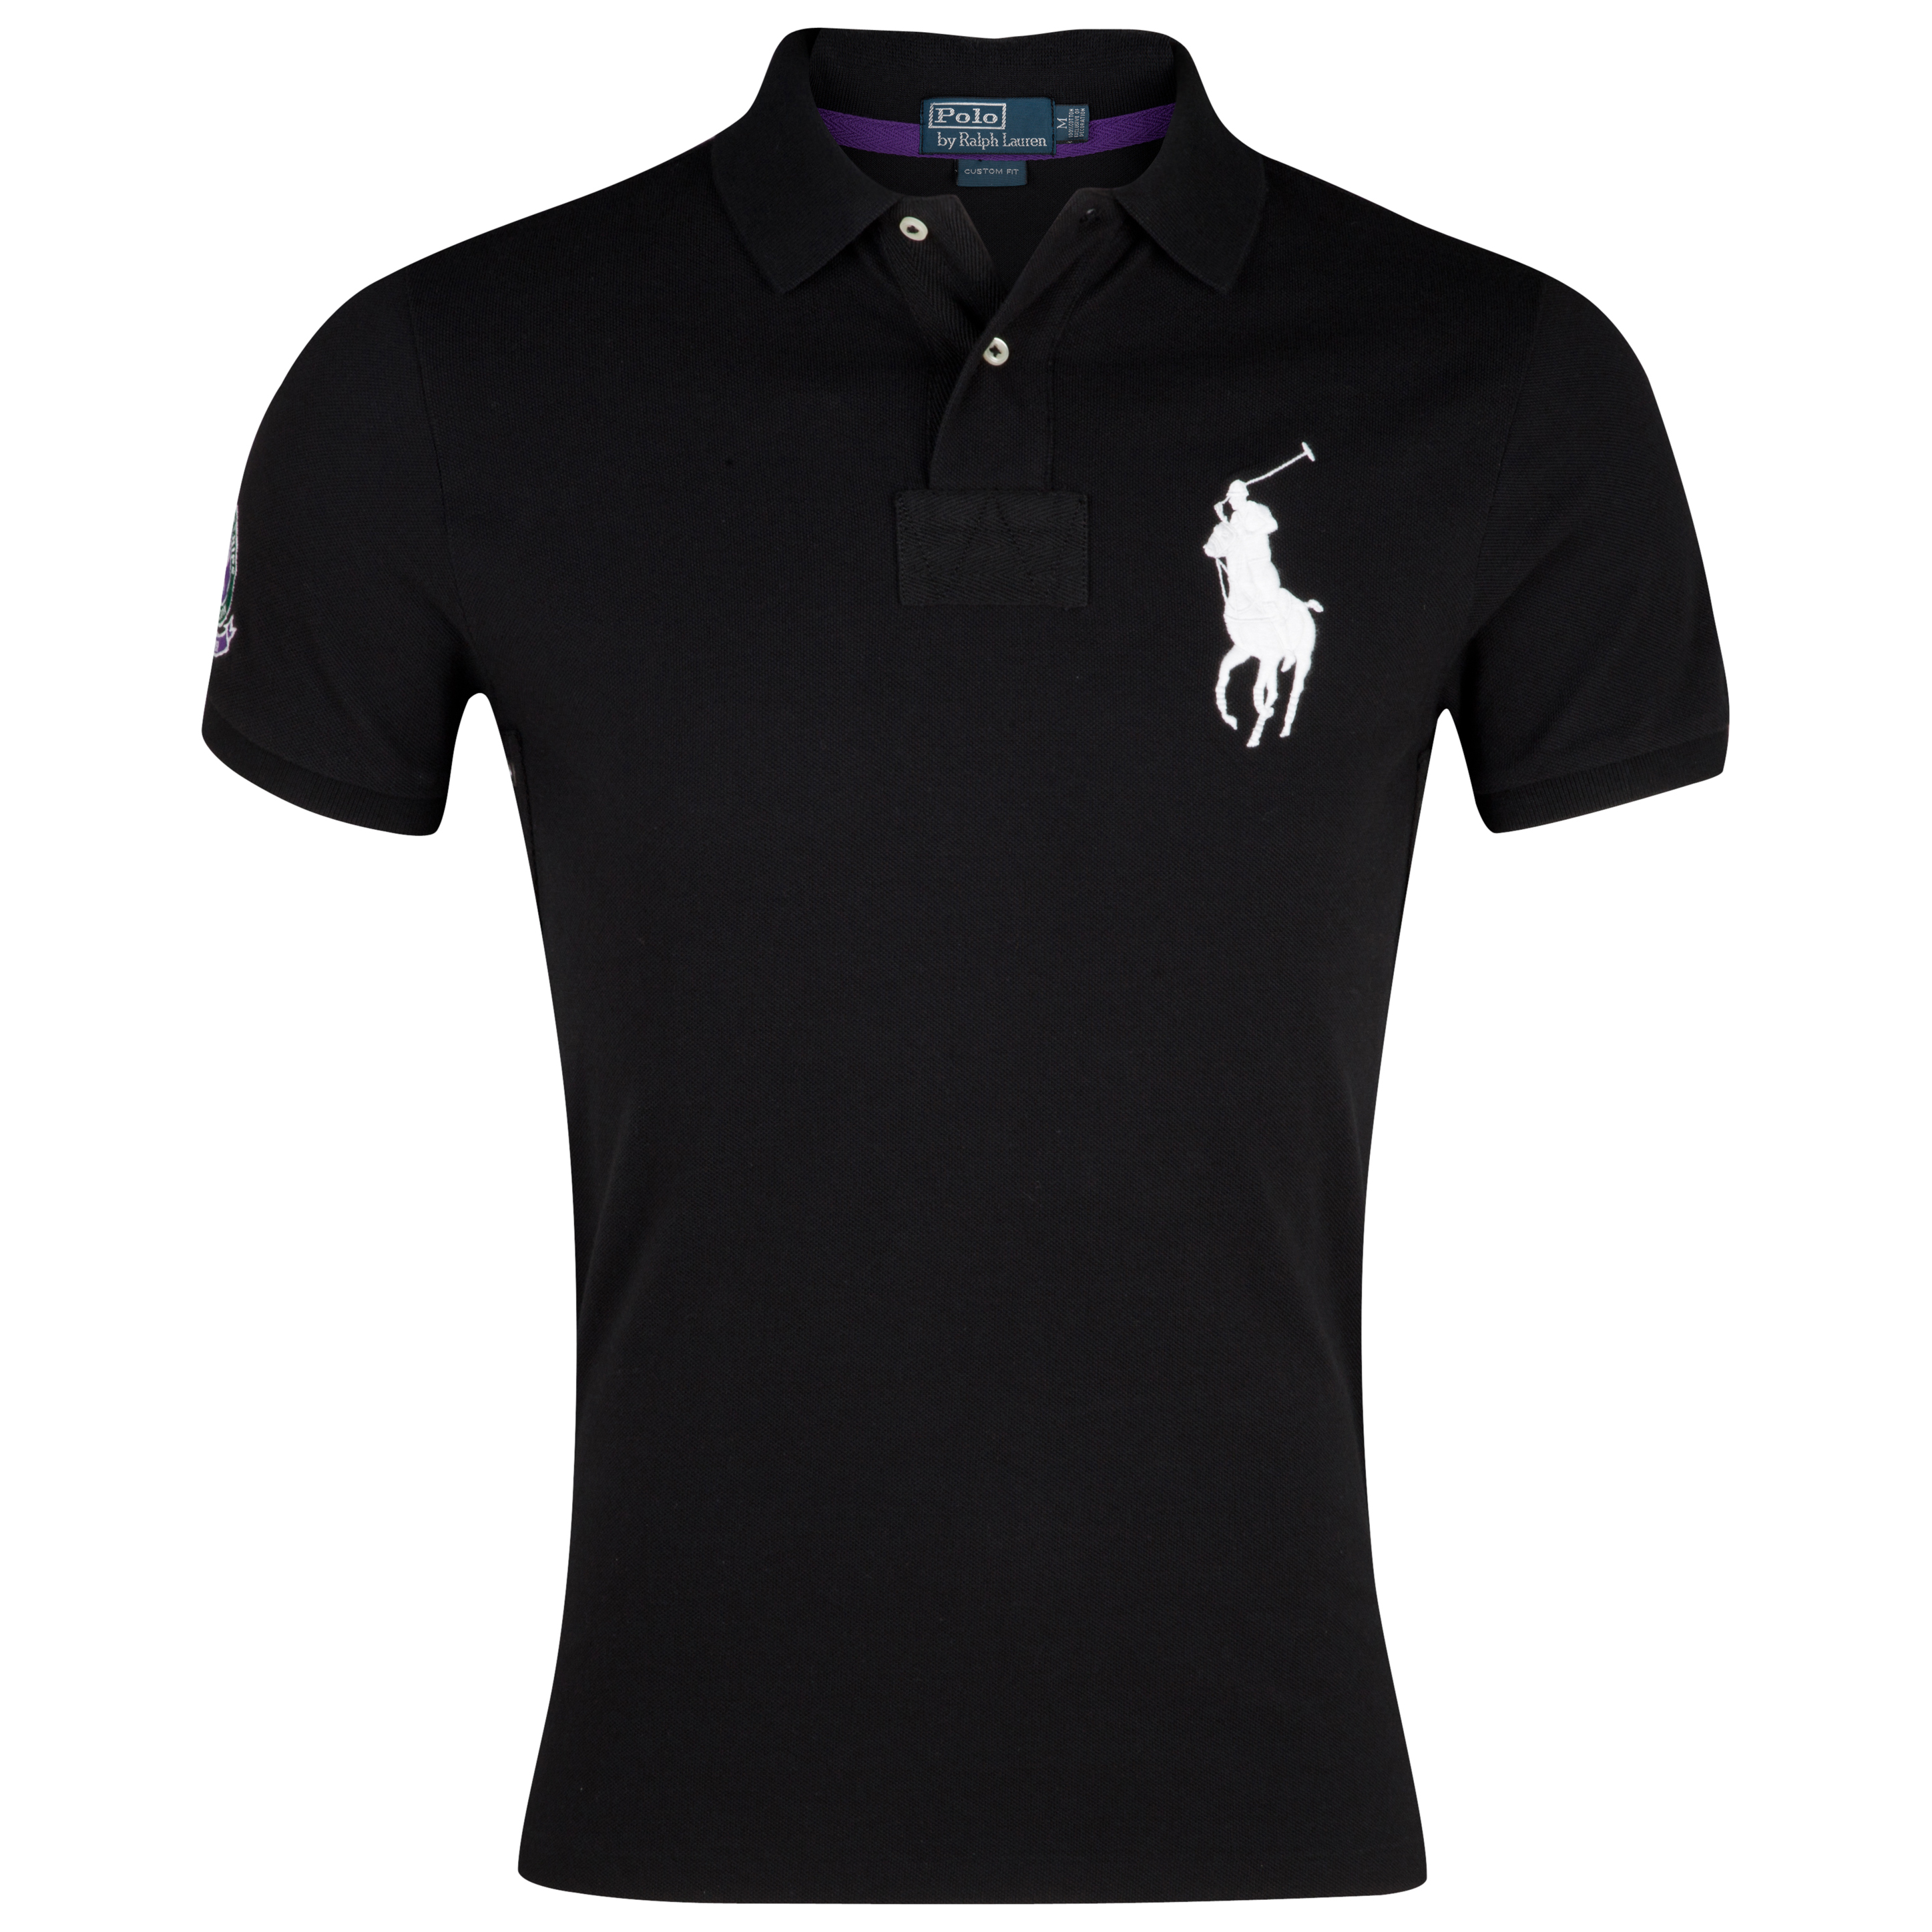 Polo Ralph Lauren Wimbledon Short Sleeve Polo - Black